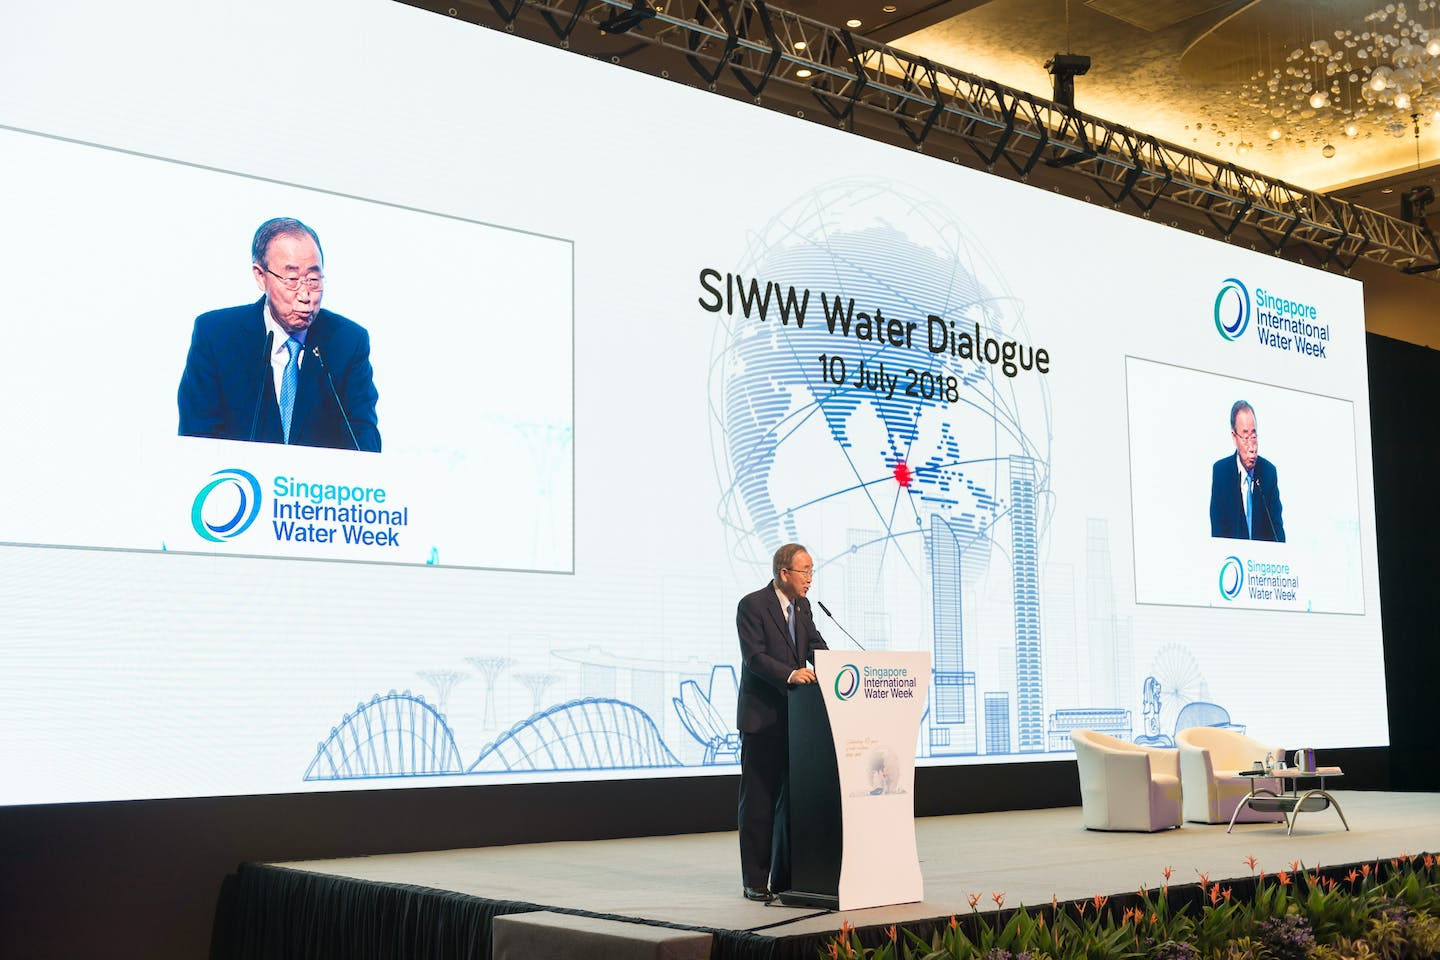 In a rousing keynote address during the Singapore International Water Week's Water Leaders Summit, former United Nations secretary-general Ban Ki-moon called for more global partnerships to tackle the world's water problems.